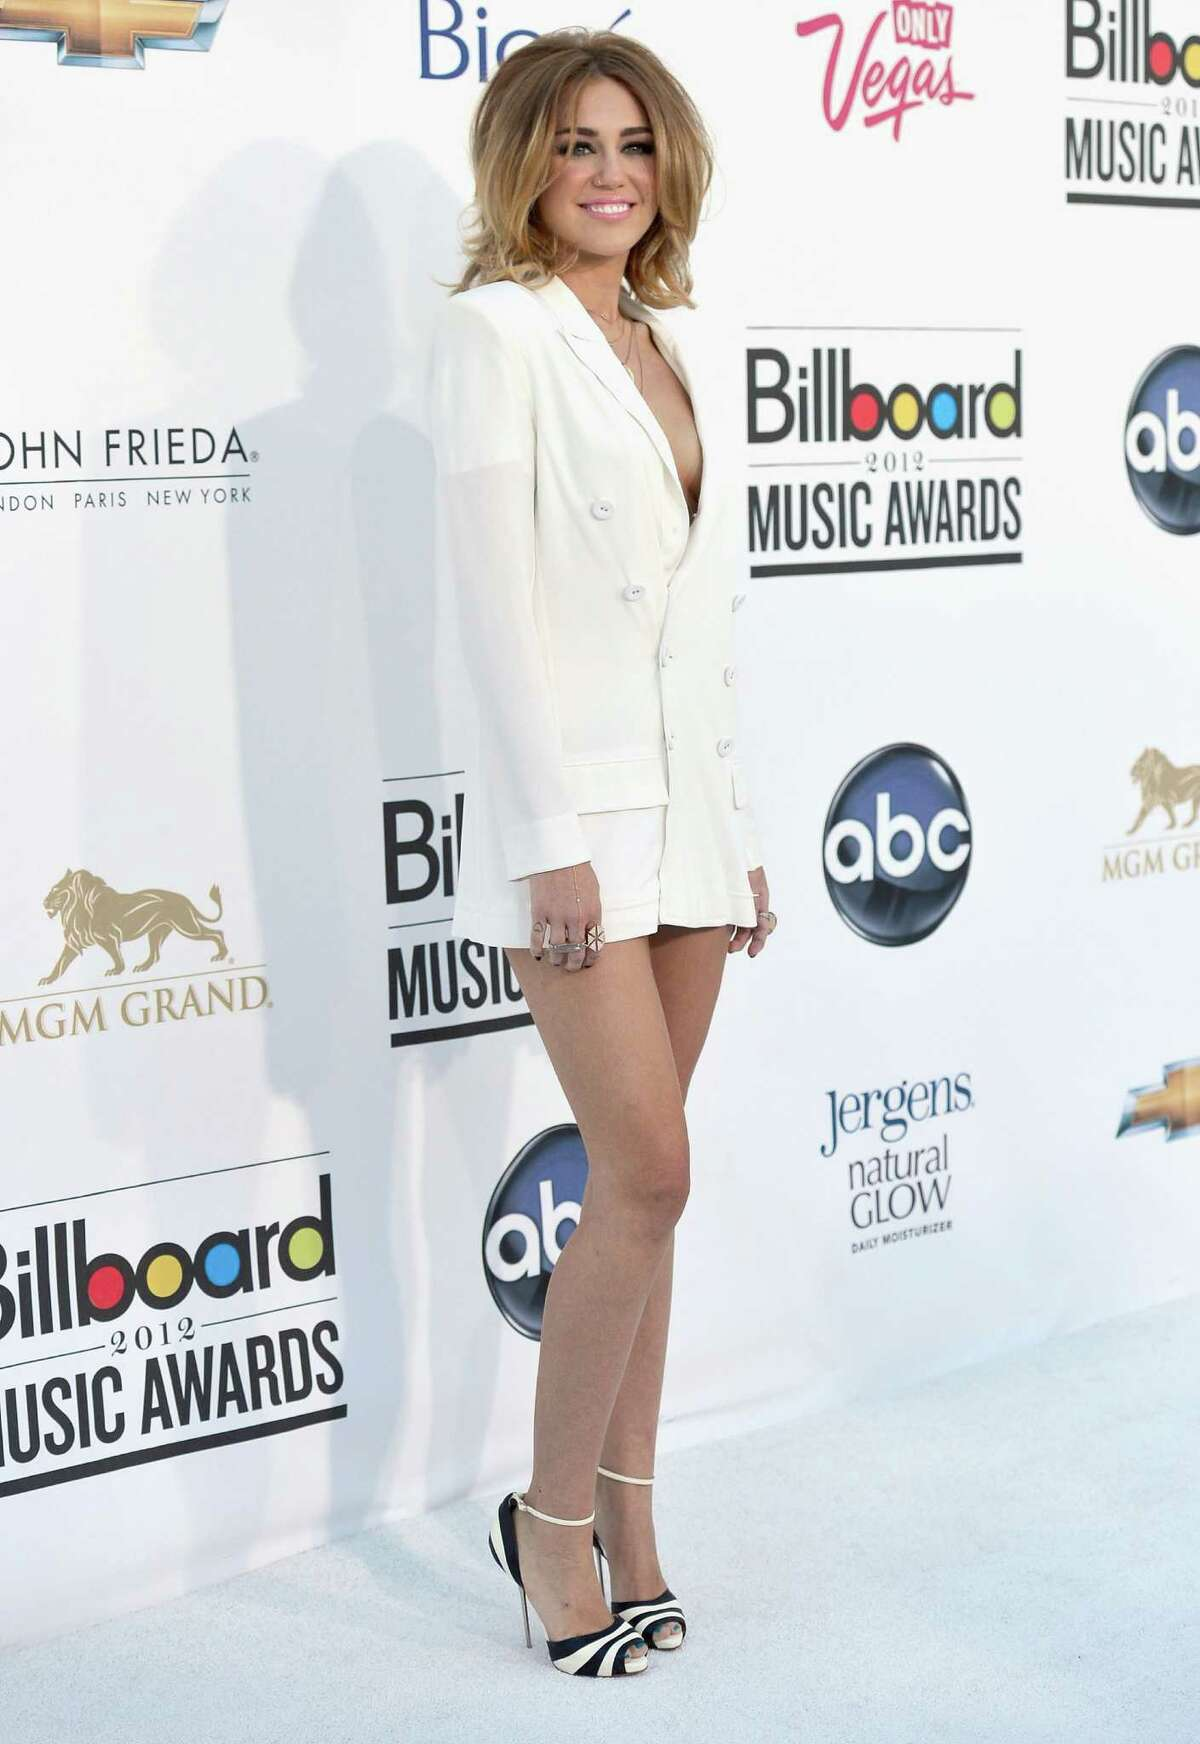 LAS VEGAS, NV - MAY 20: Singer Miley Cyrus arrives at the 2012 Billboard Music Awards held at the MGM Grand Garden Arena on May 20, 2012 in Las Vegas, Nevada.